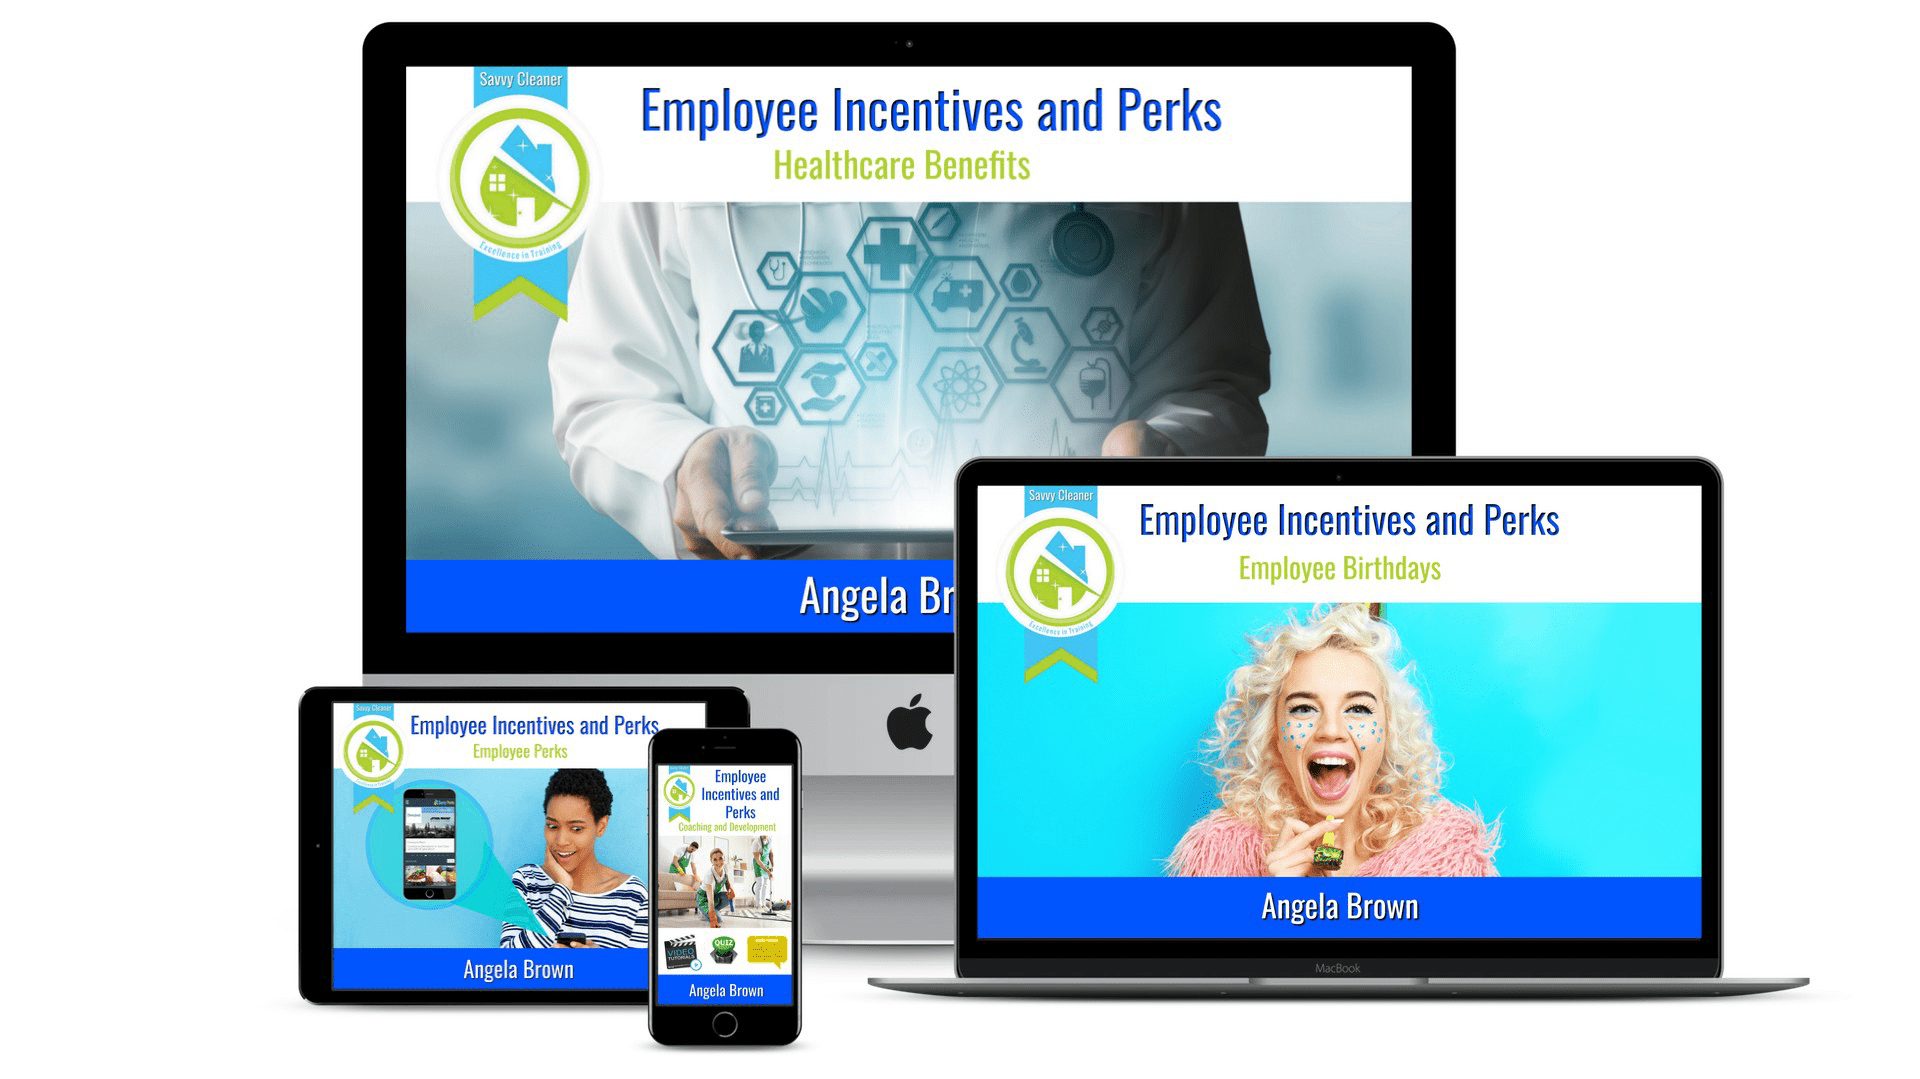 Employee Incentives and Perks SM Featured